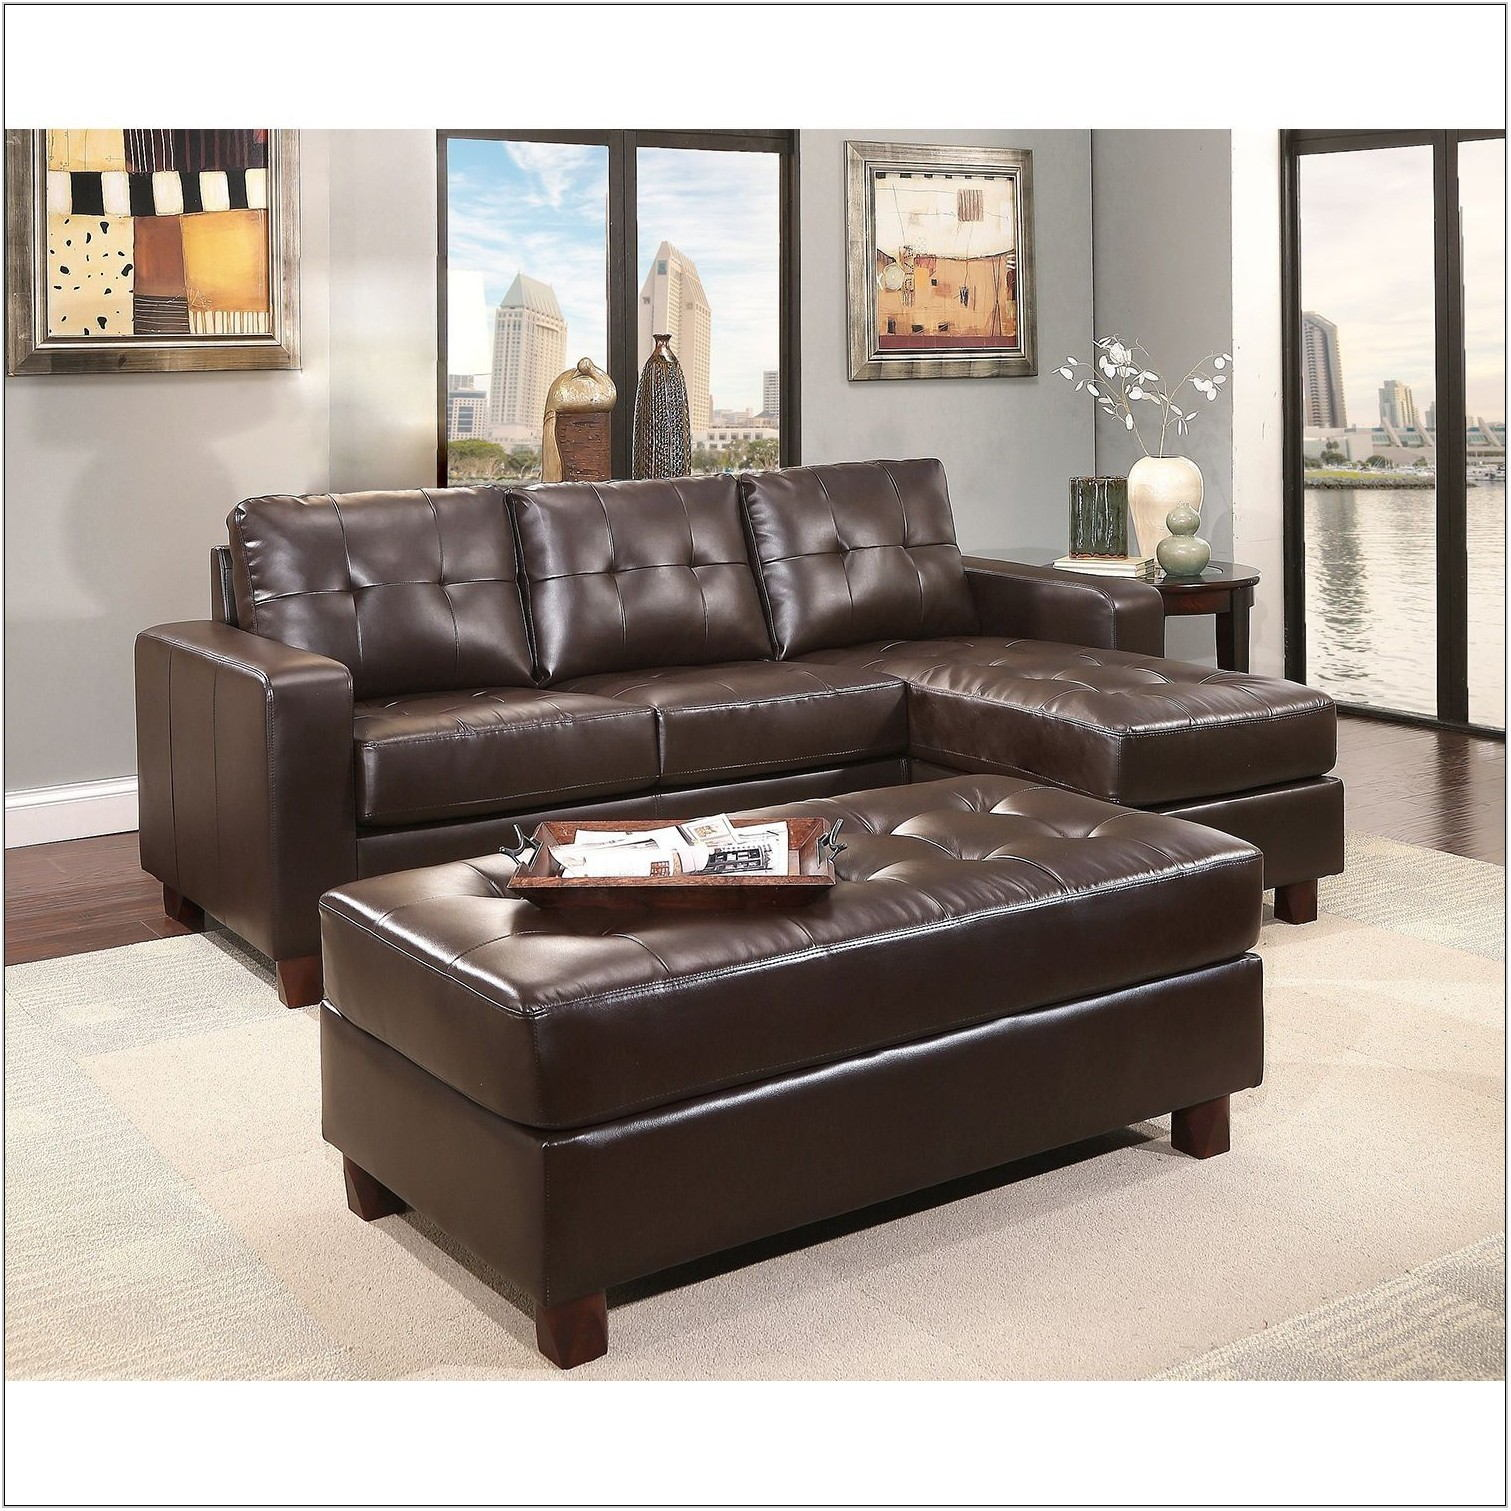 Sams Club Leather Living Room Furniture